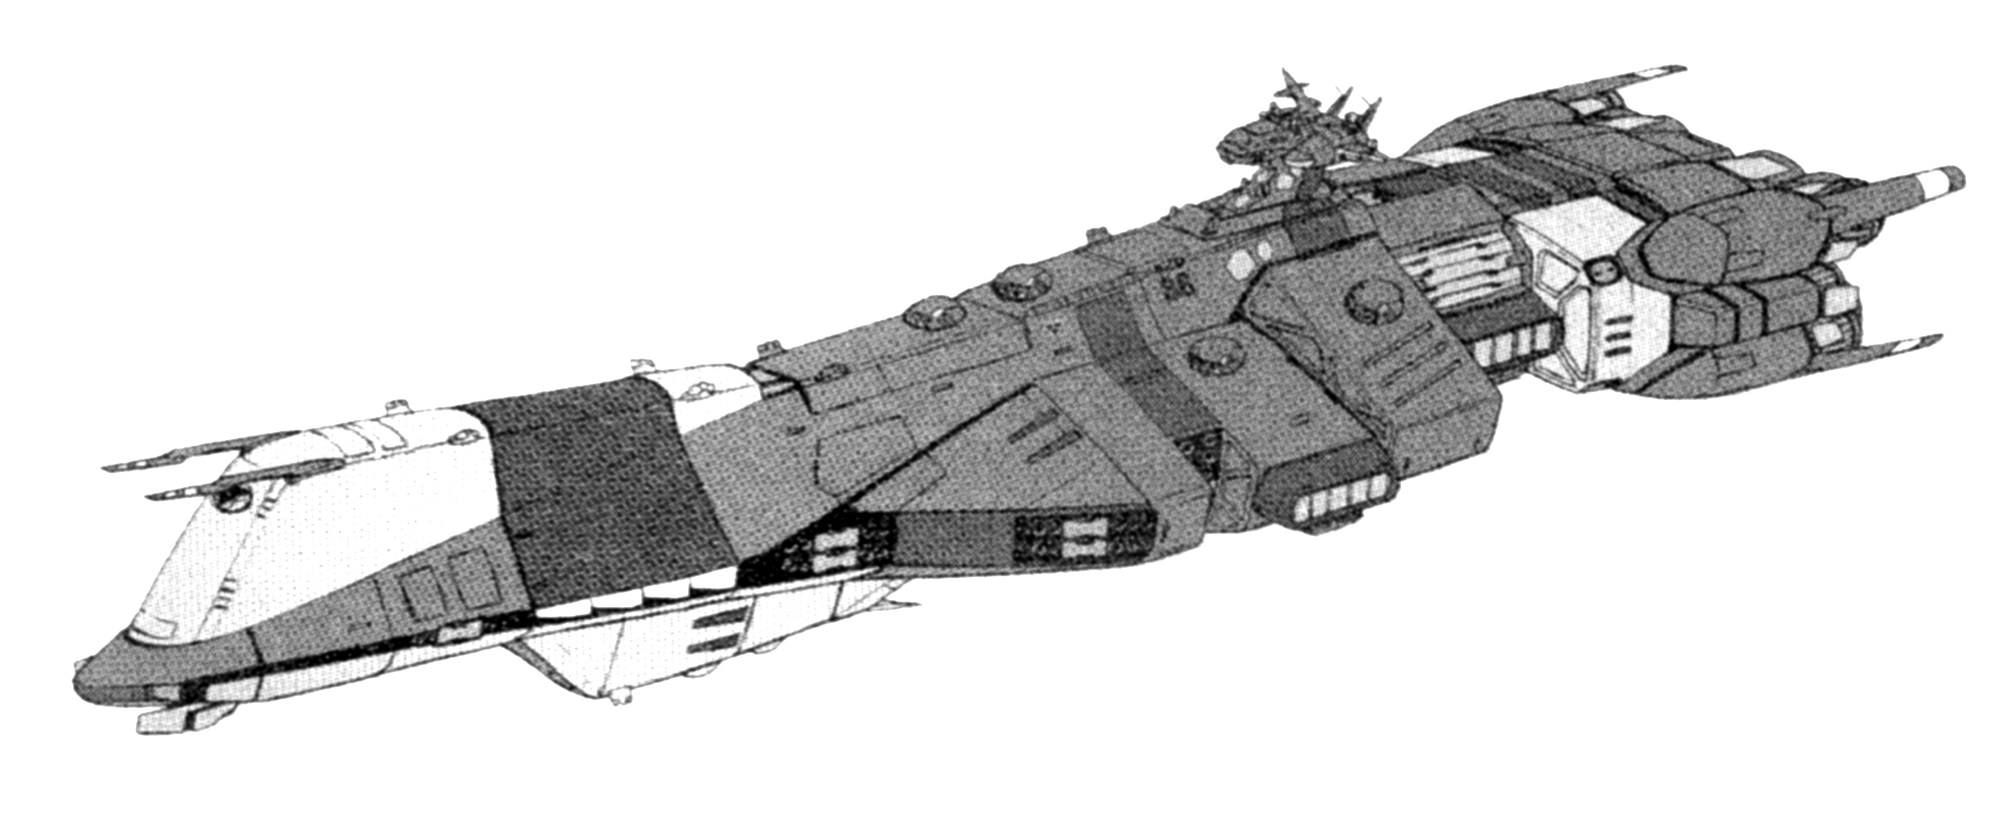 Tokogawa-class Super Dimensional Carrier post-refit 1